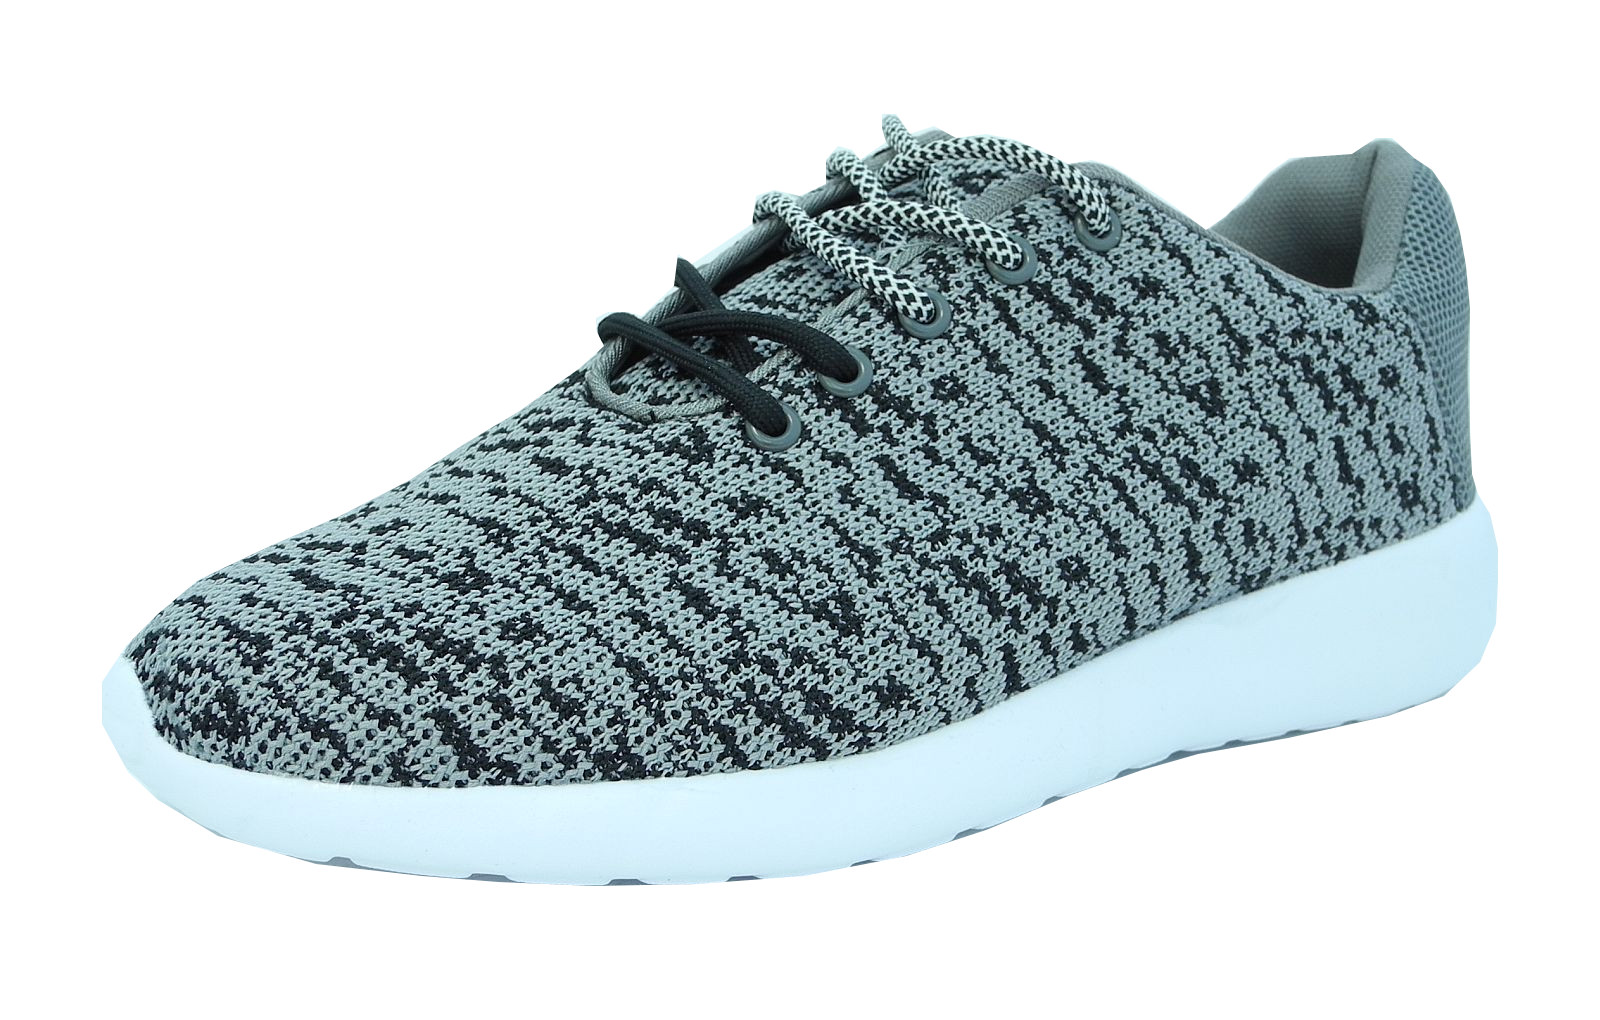 4bdbb23c5 Accessories Sports & Outdoors Womens Sneakers Spring & Fall Lightweight  Mesh Trainers Slip On Lace Up ...